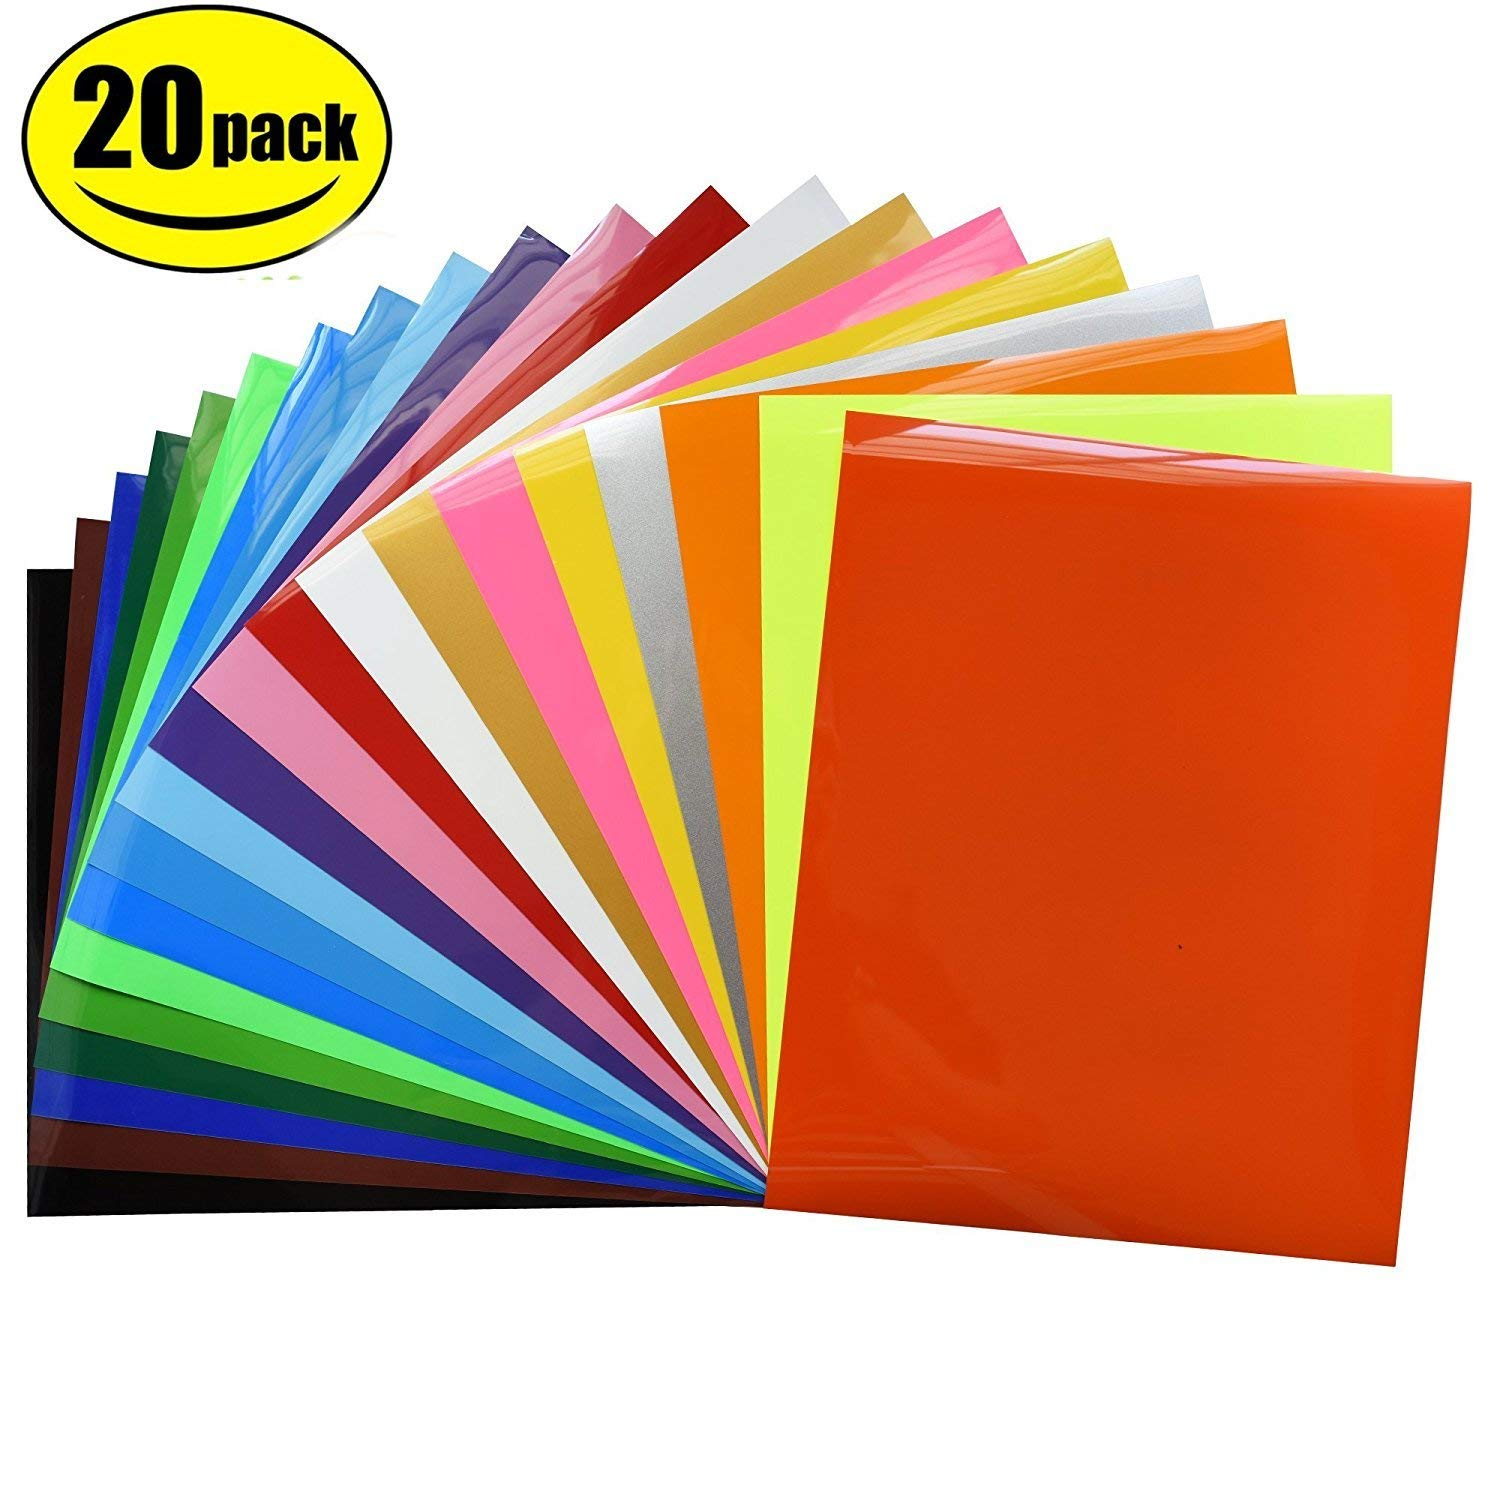 "Heat Transfer Vinyl Bundle 12""x10""- 20 Pack of Assorted Color DIY T-Shirt Vinyl Transfer Sheets -Best Iron On HTV Vinyl for Silhouette Cameo, Cricut - or Use with Heat Press Machine"